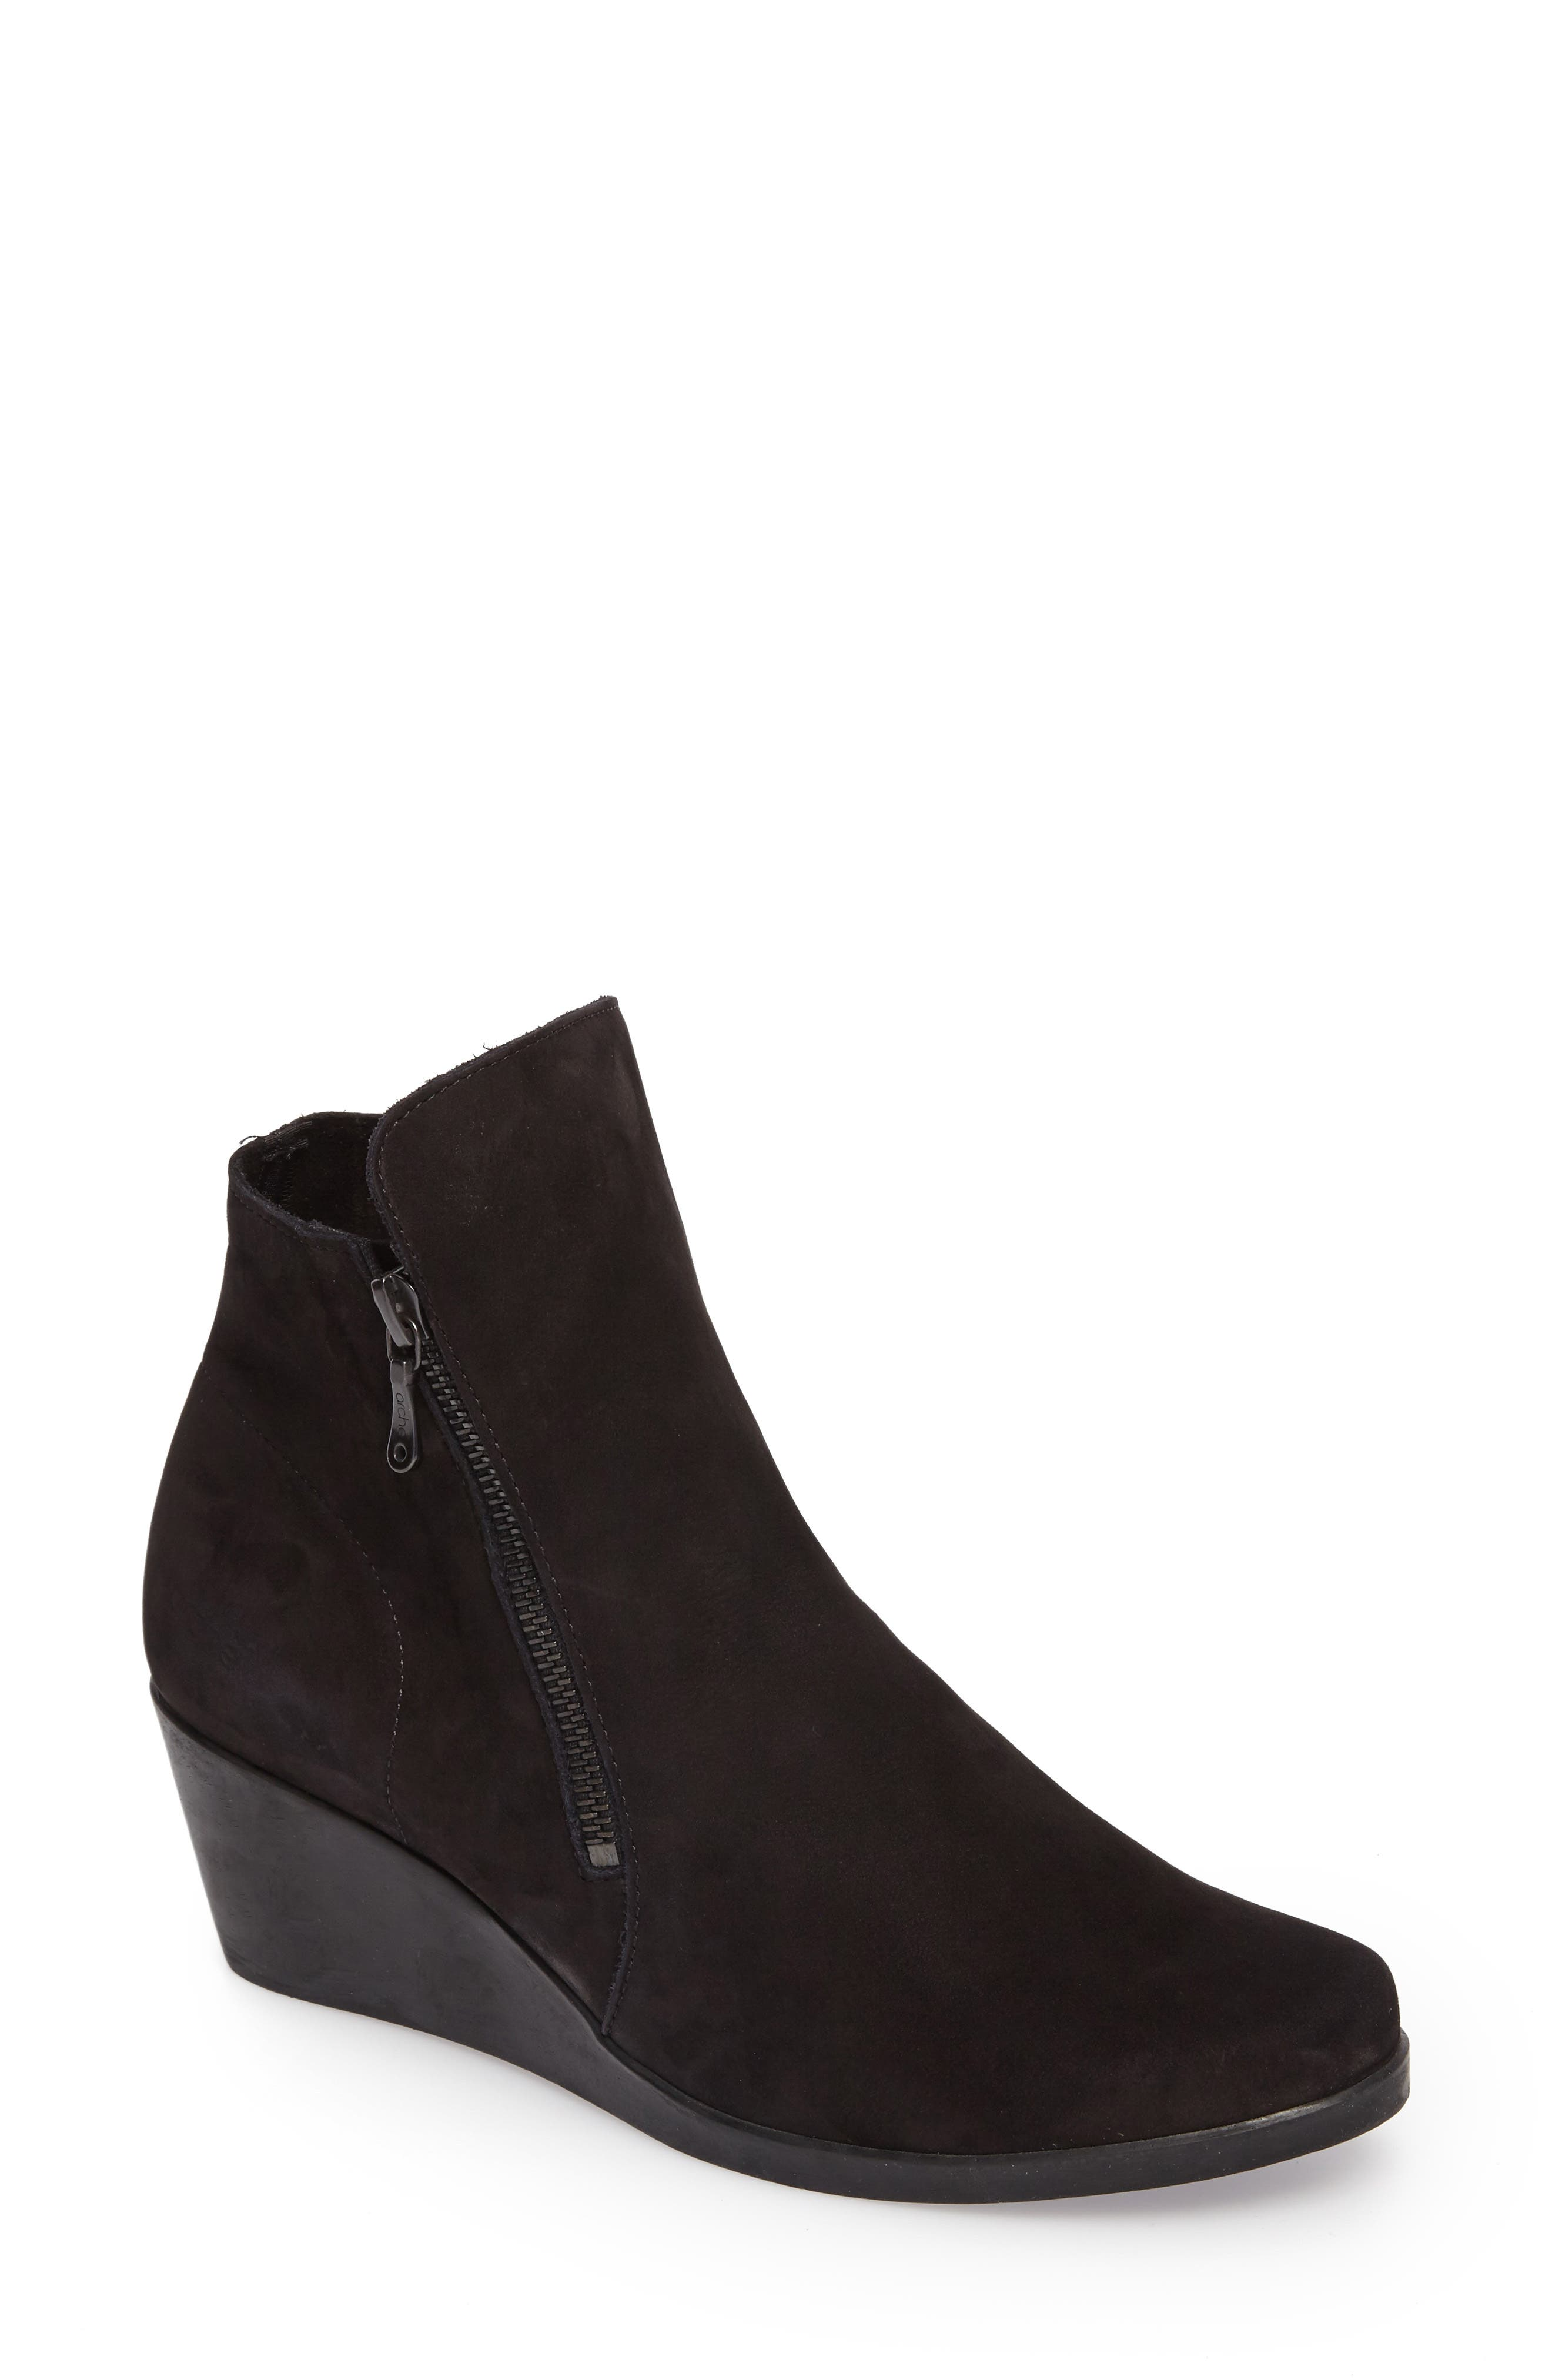 Alternate Image 1 Selected - Arche Jolia Water Resistant Bootie (Women)